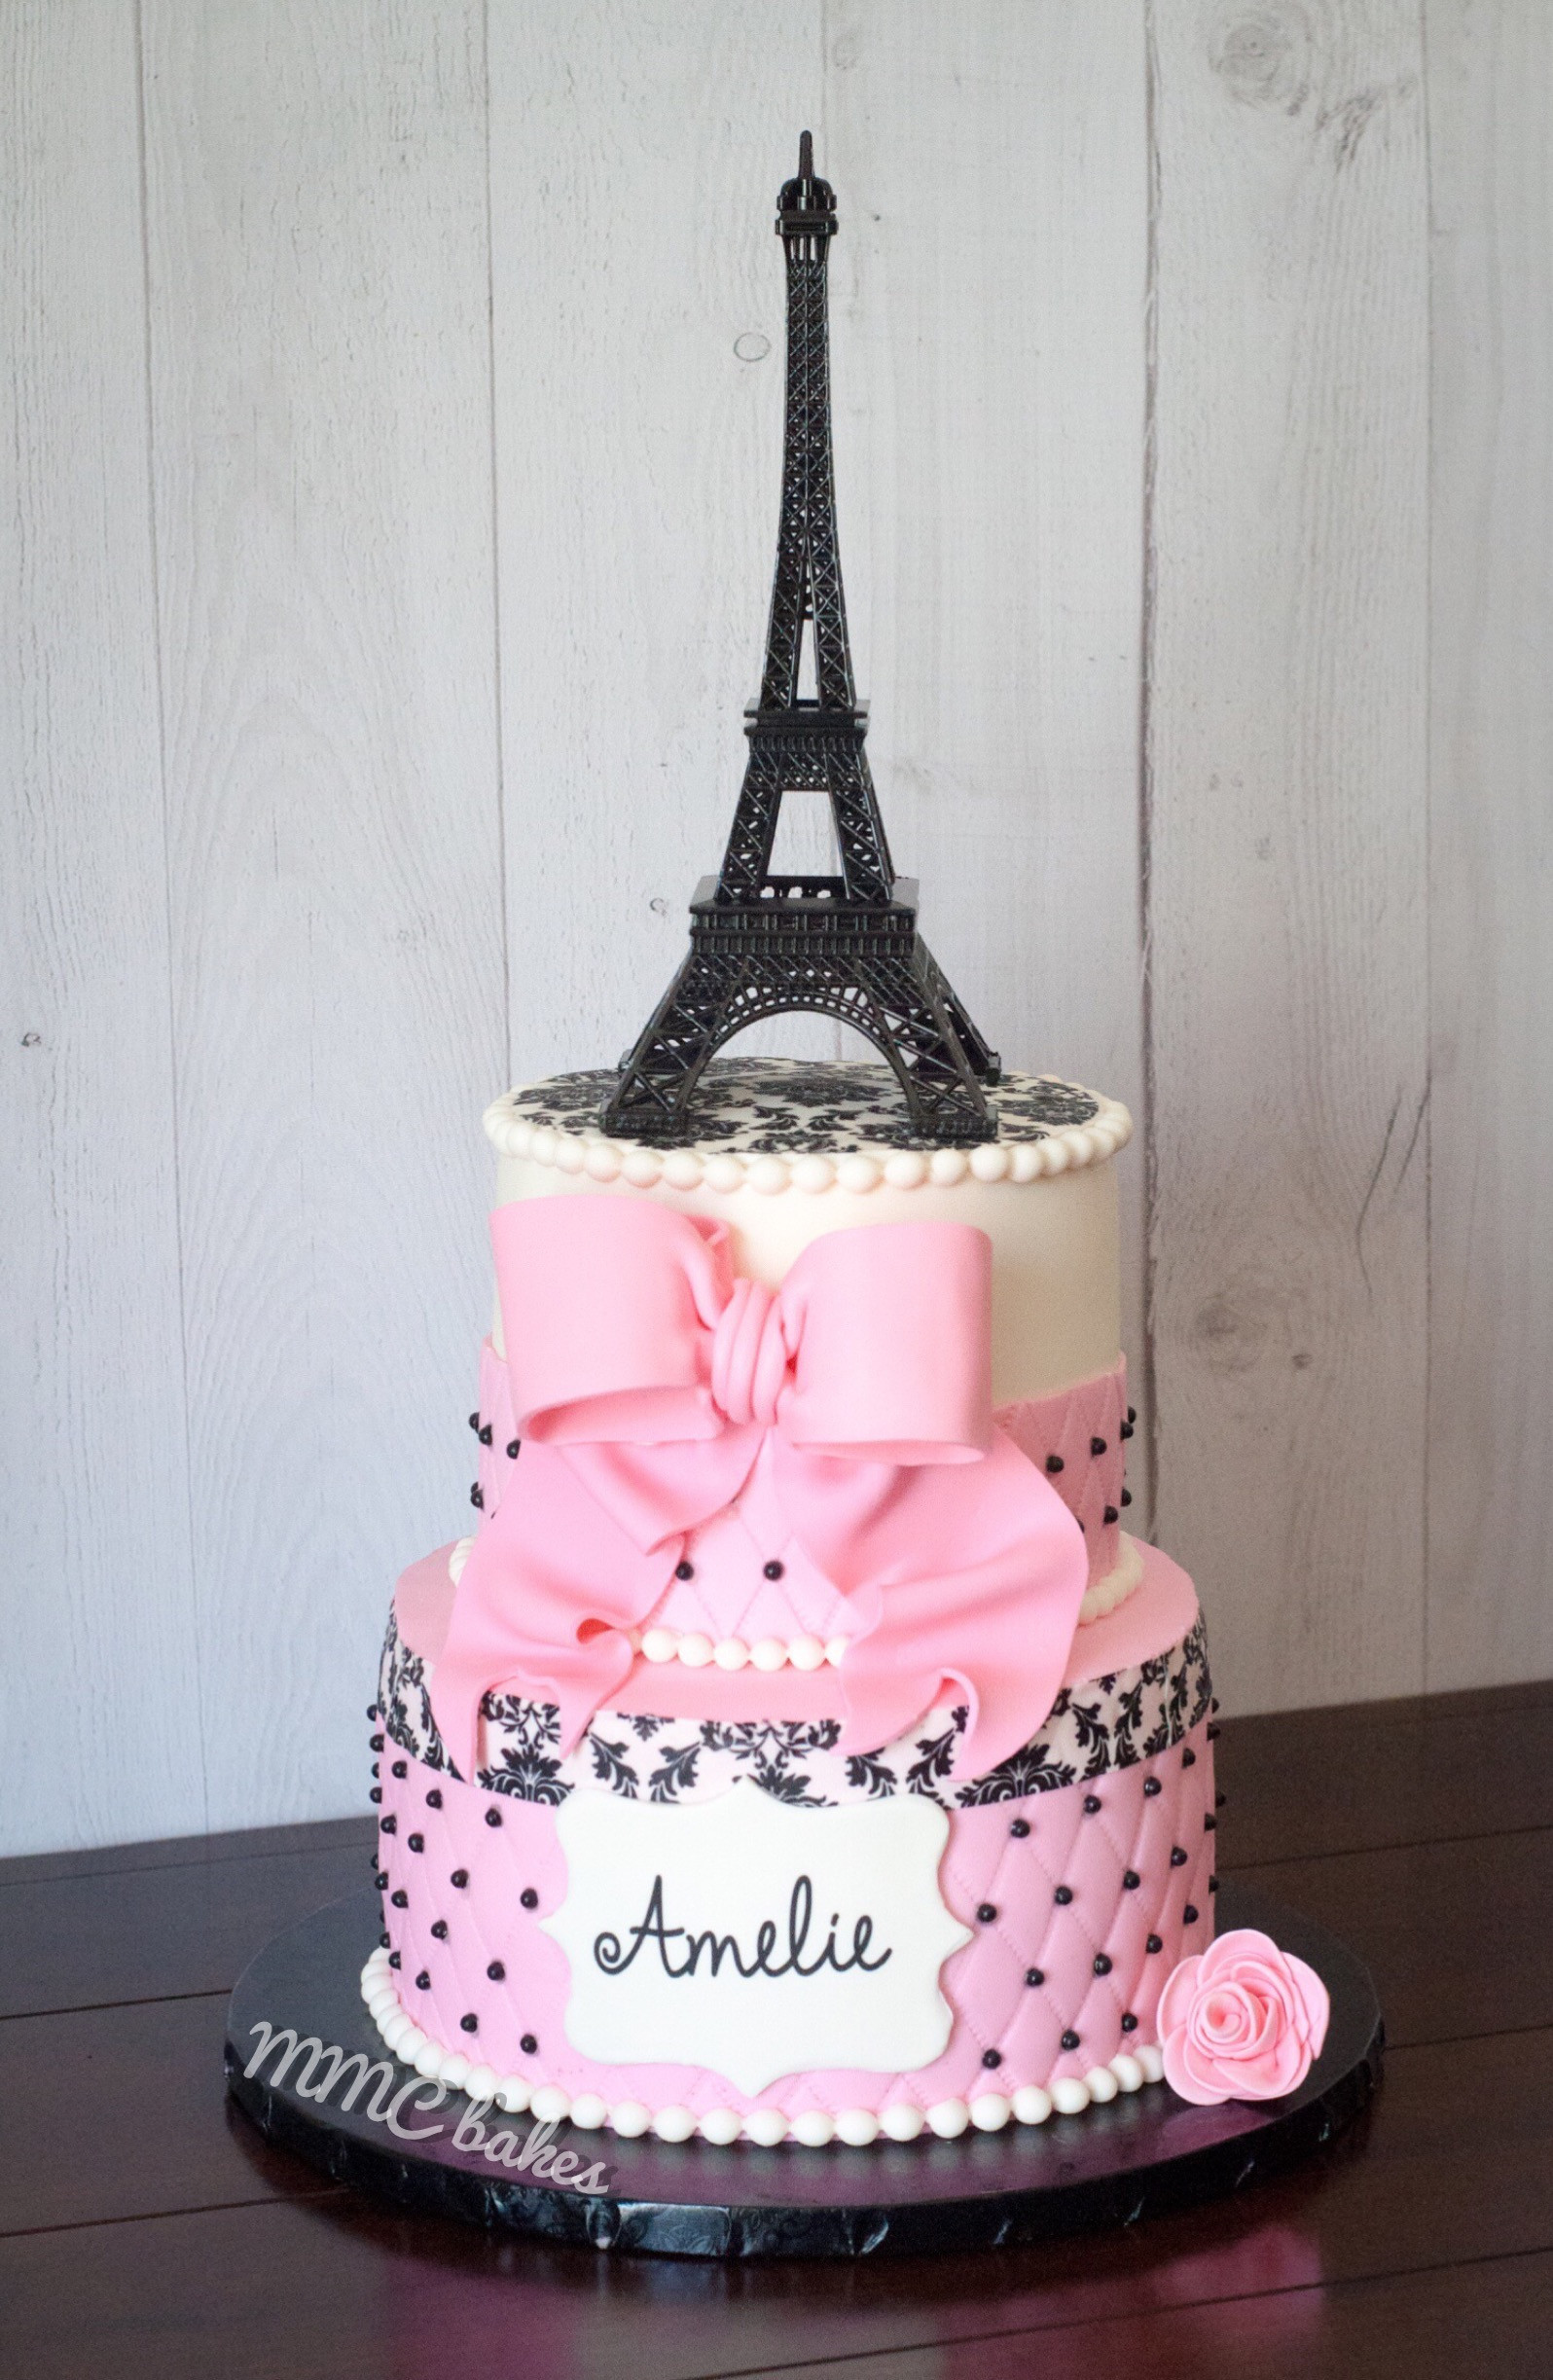 Best ideas about Paris Birthday Cake . Save or Pin Paris 1st Birthday Cake & Cupcakes – MMC Bakes Now.